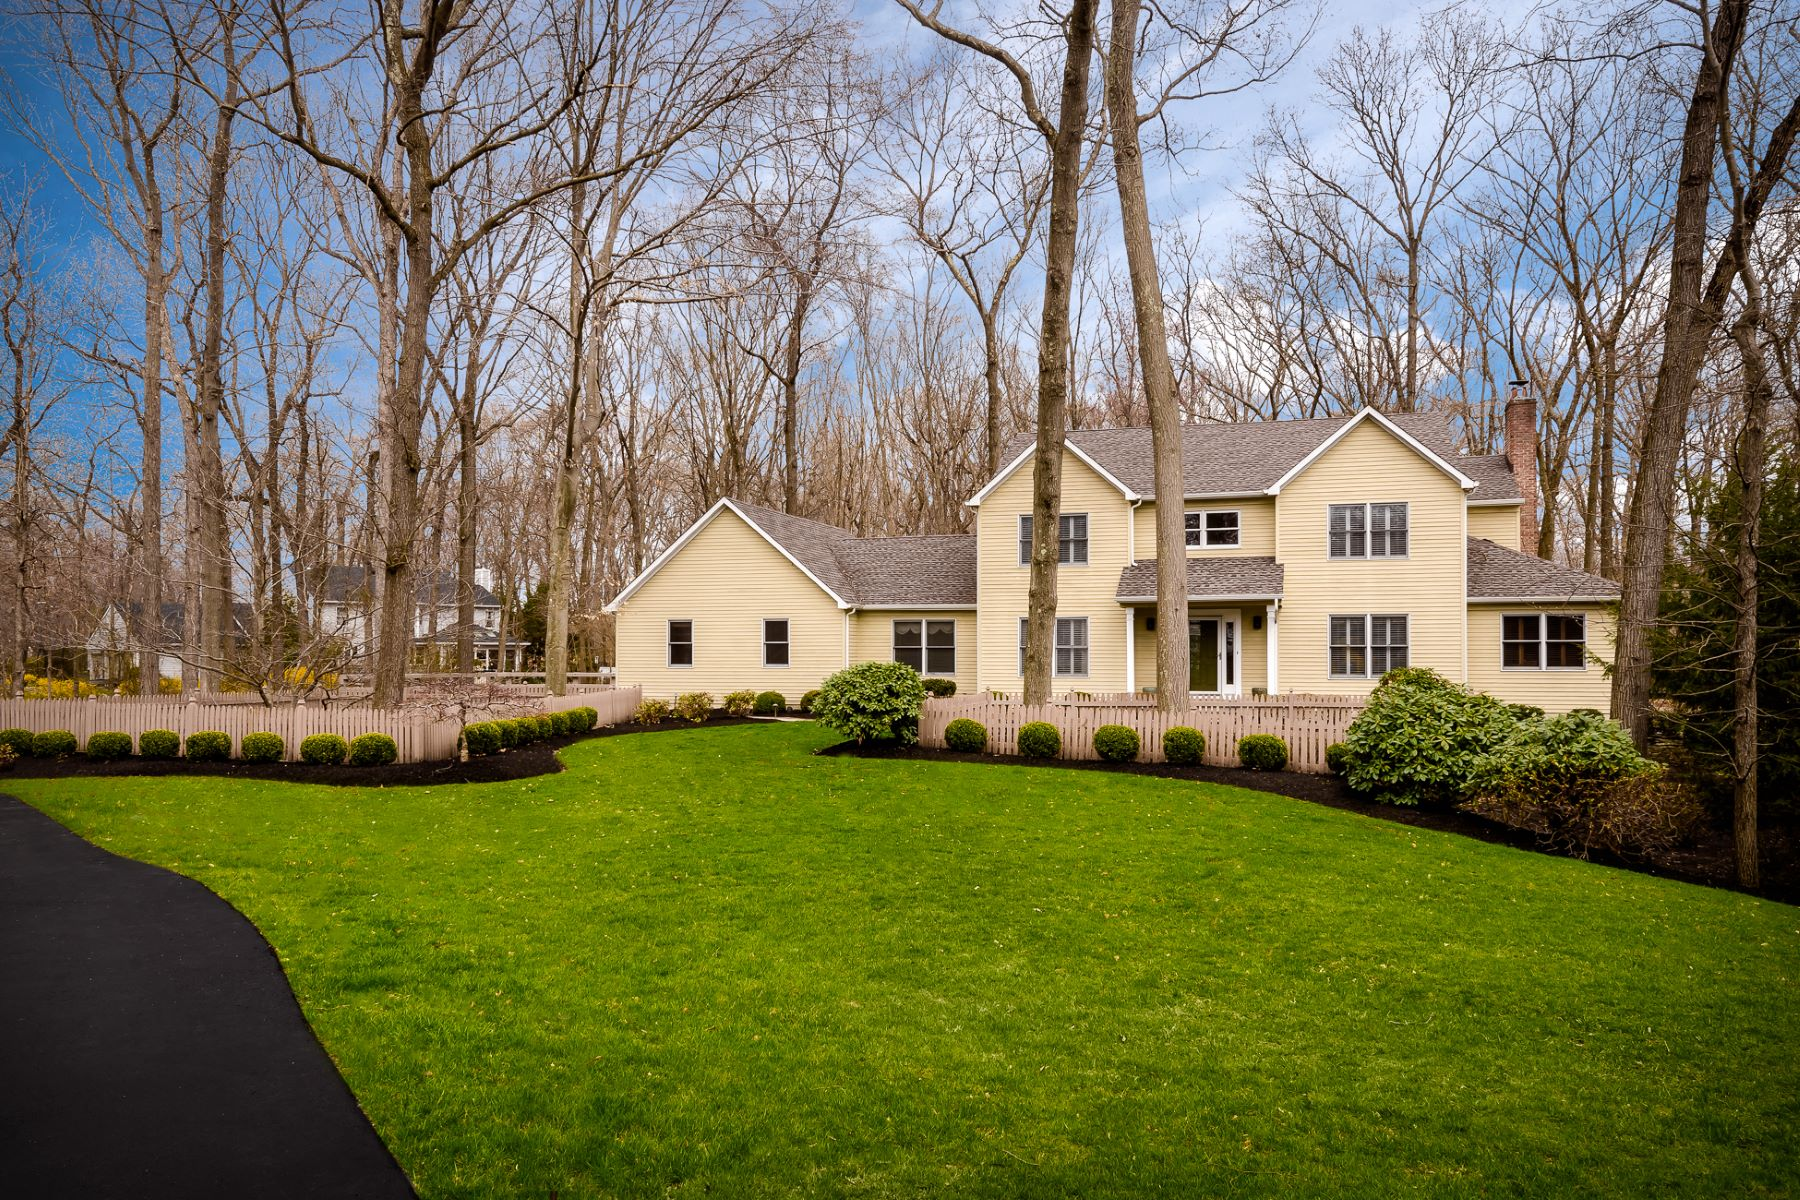 Property para Venda às A Premium Position on a Manicured Cul-De-Sac 16 Blackhawk Court, West Windsor, Nova Jersey 08550 Estados Unidos